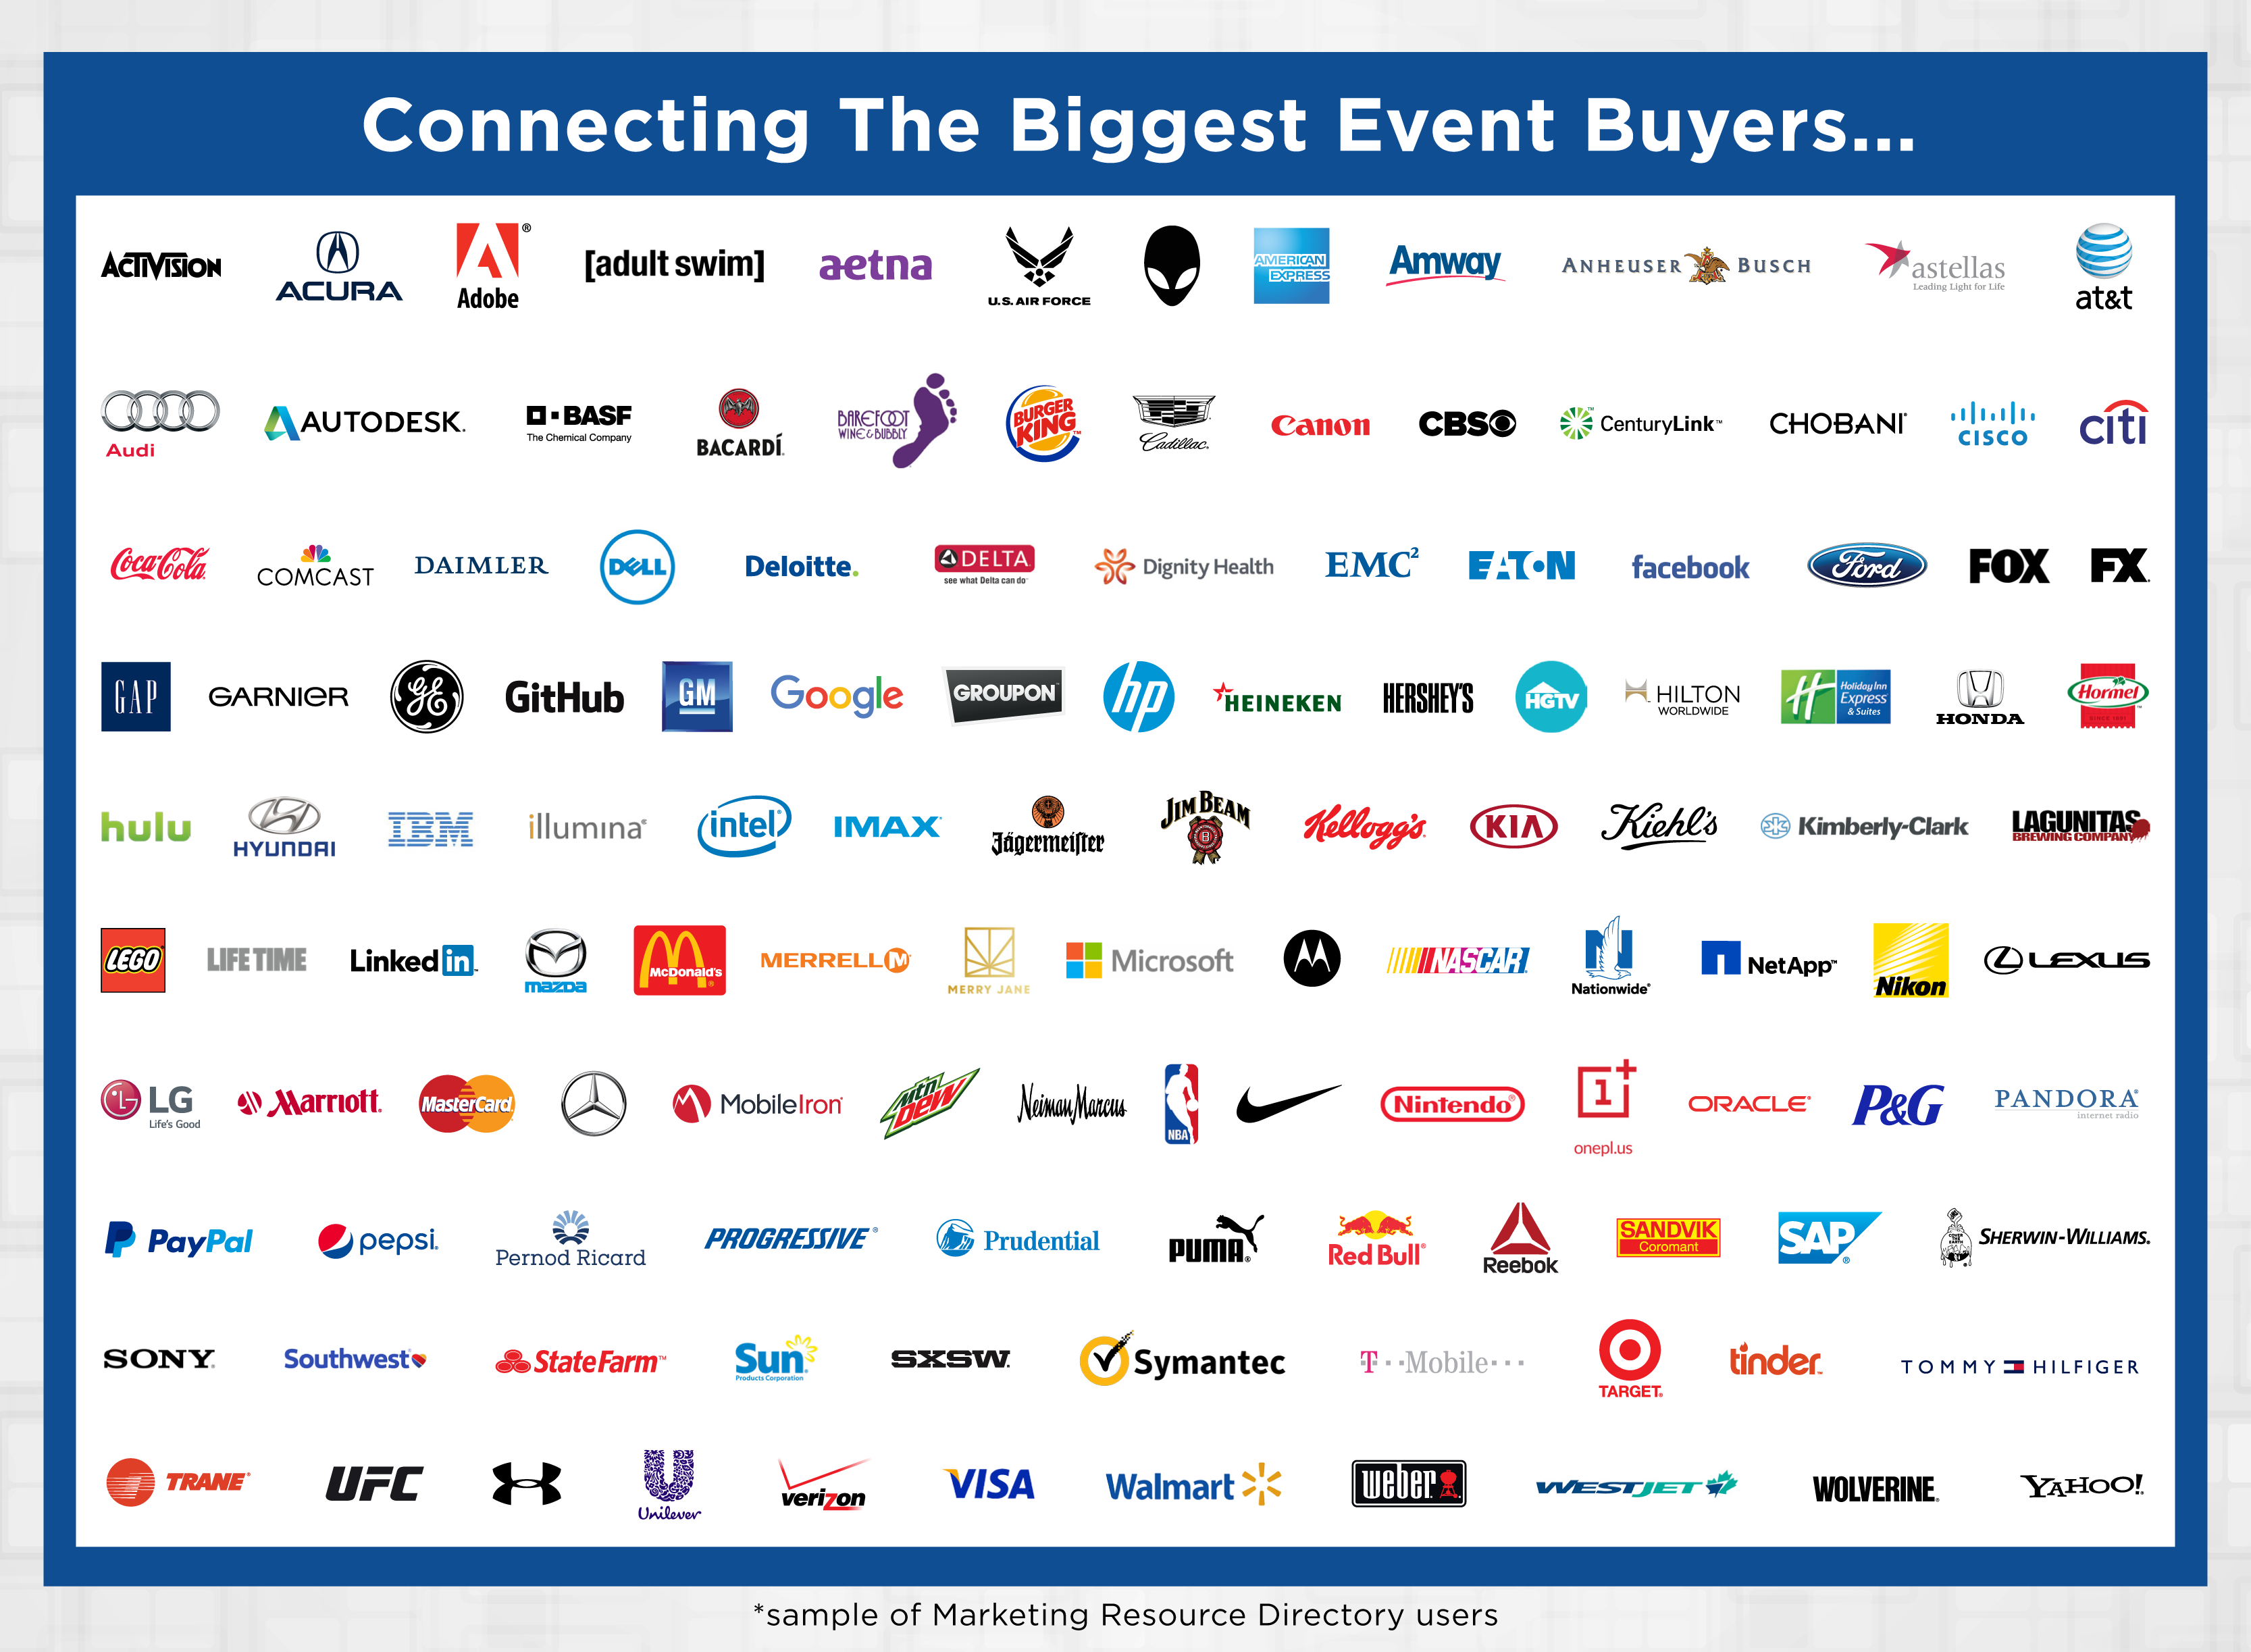 Connecting the Biggest Event Buyers